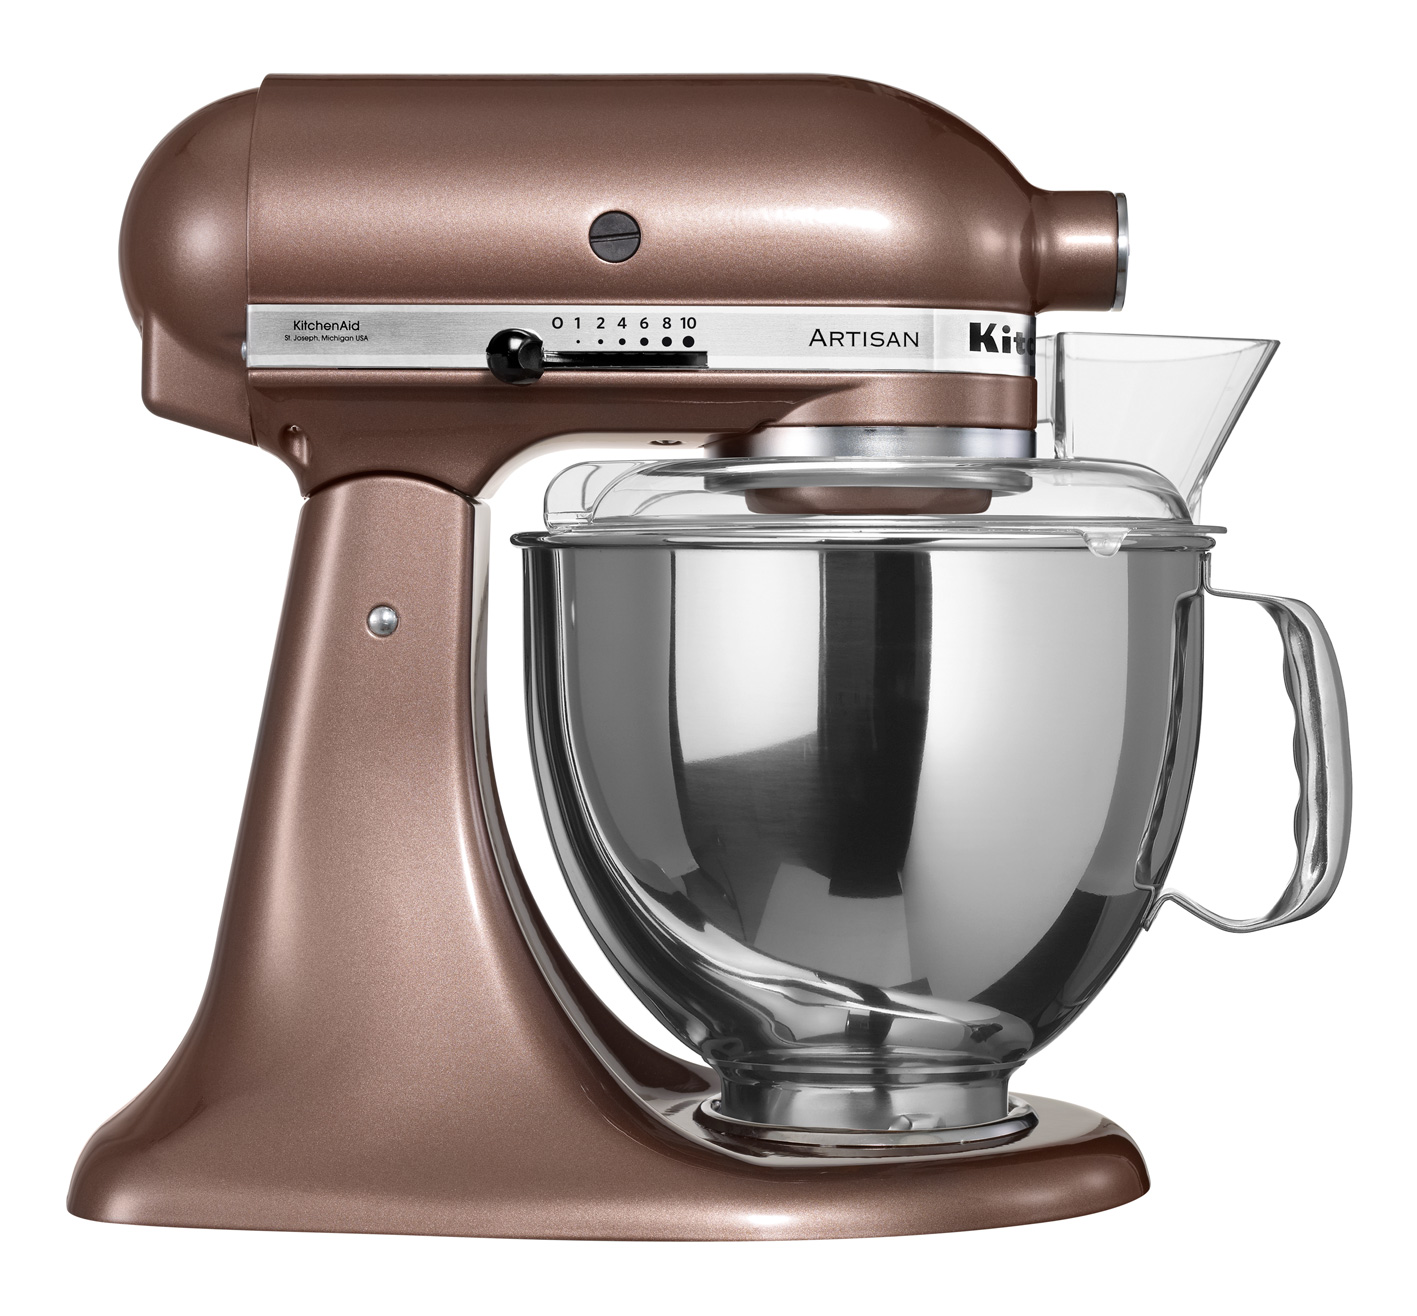 220 volt kitchenaid 5ksm150pseap artisan stand mixer. Black Bedroom Furniture Sets. Home Design Ideas